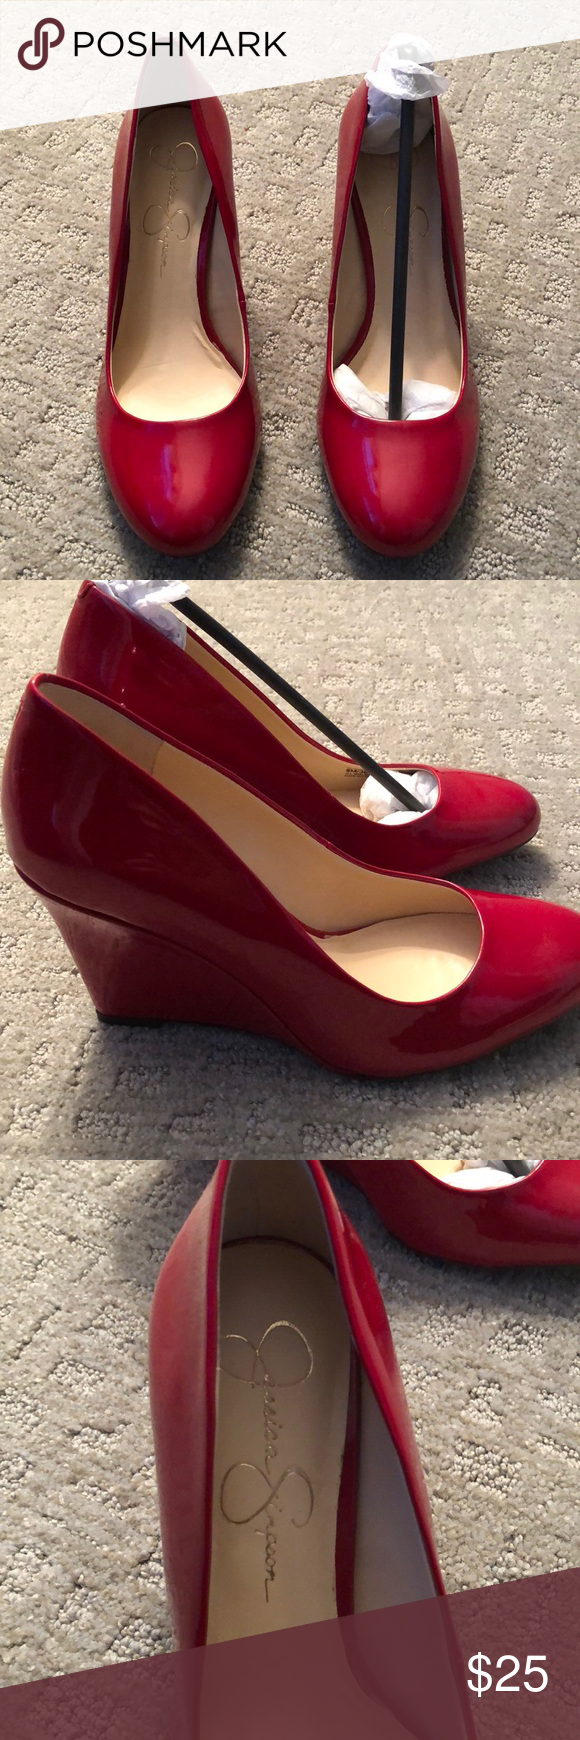 e78624cb0fdc New Jessica Simpson Red Wedges